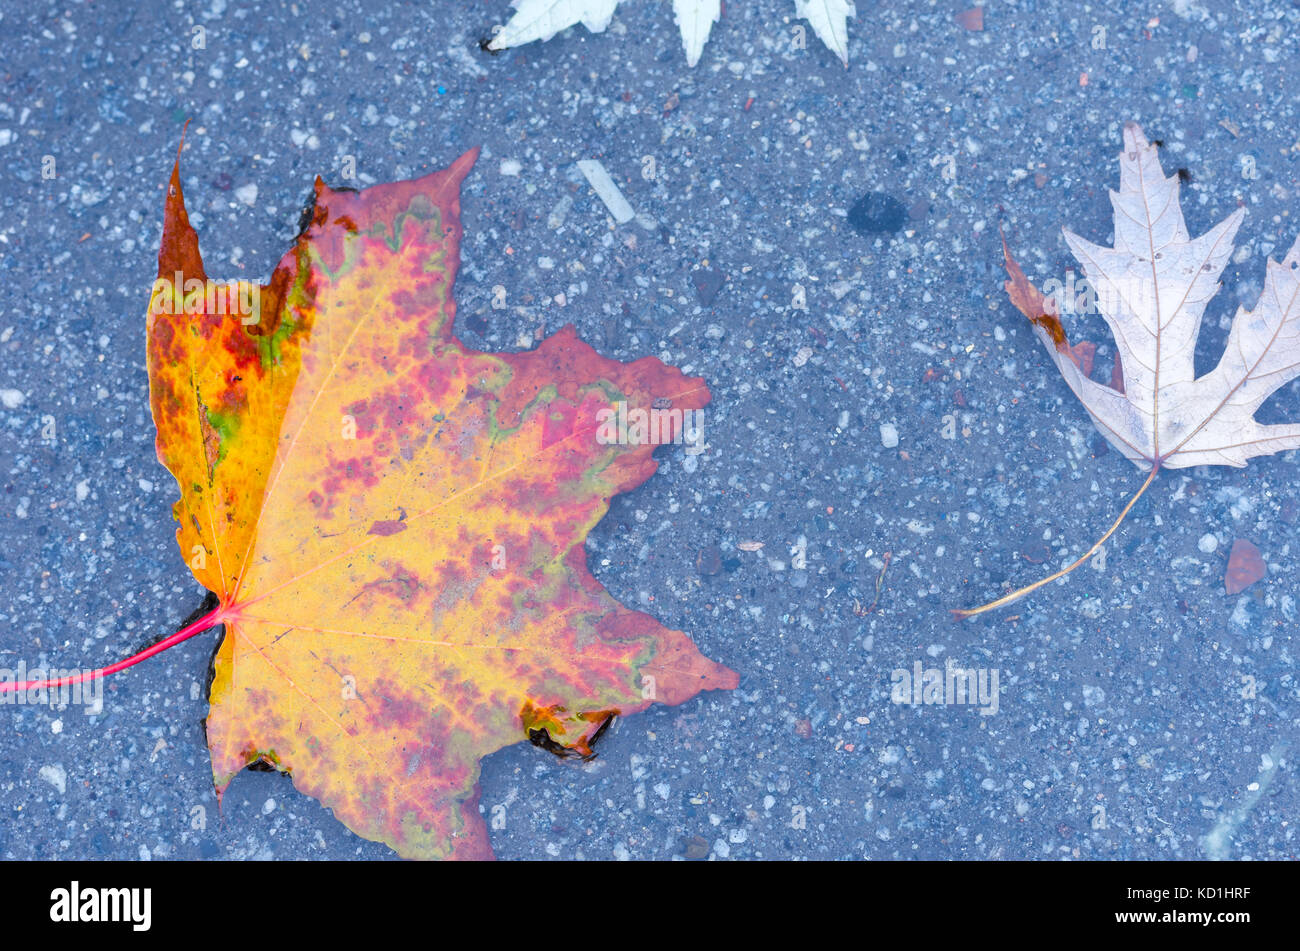 Autumn maple leaf. Autumn foliage. Leaf in a puddle. Autumn background. Stock Photo